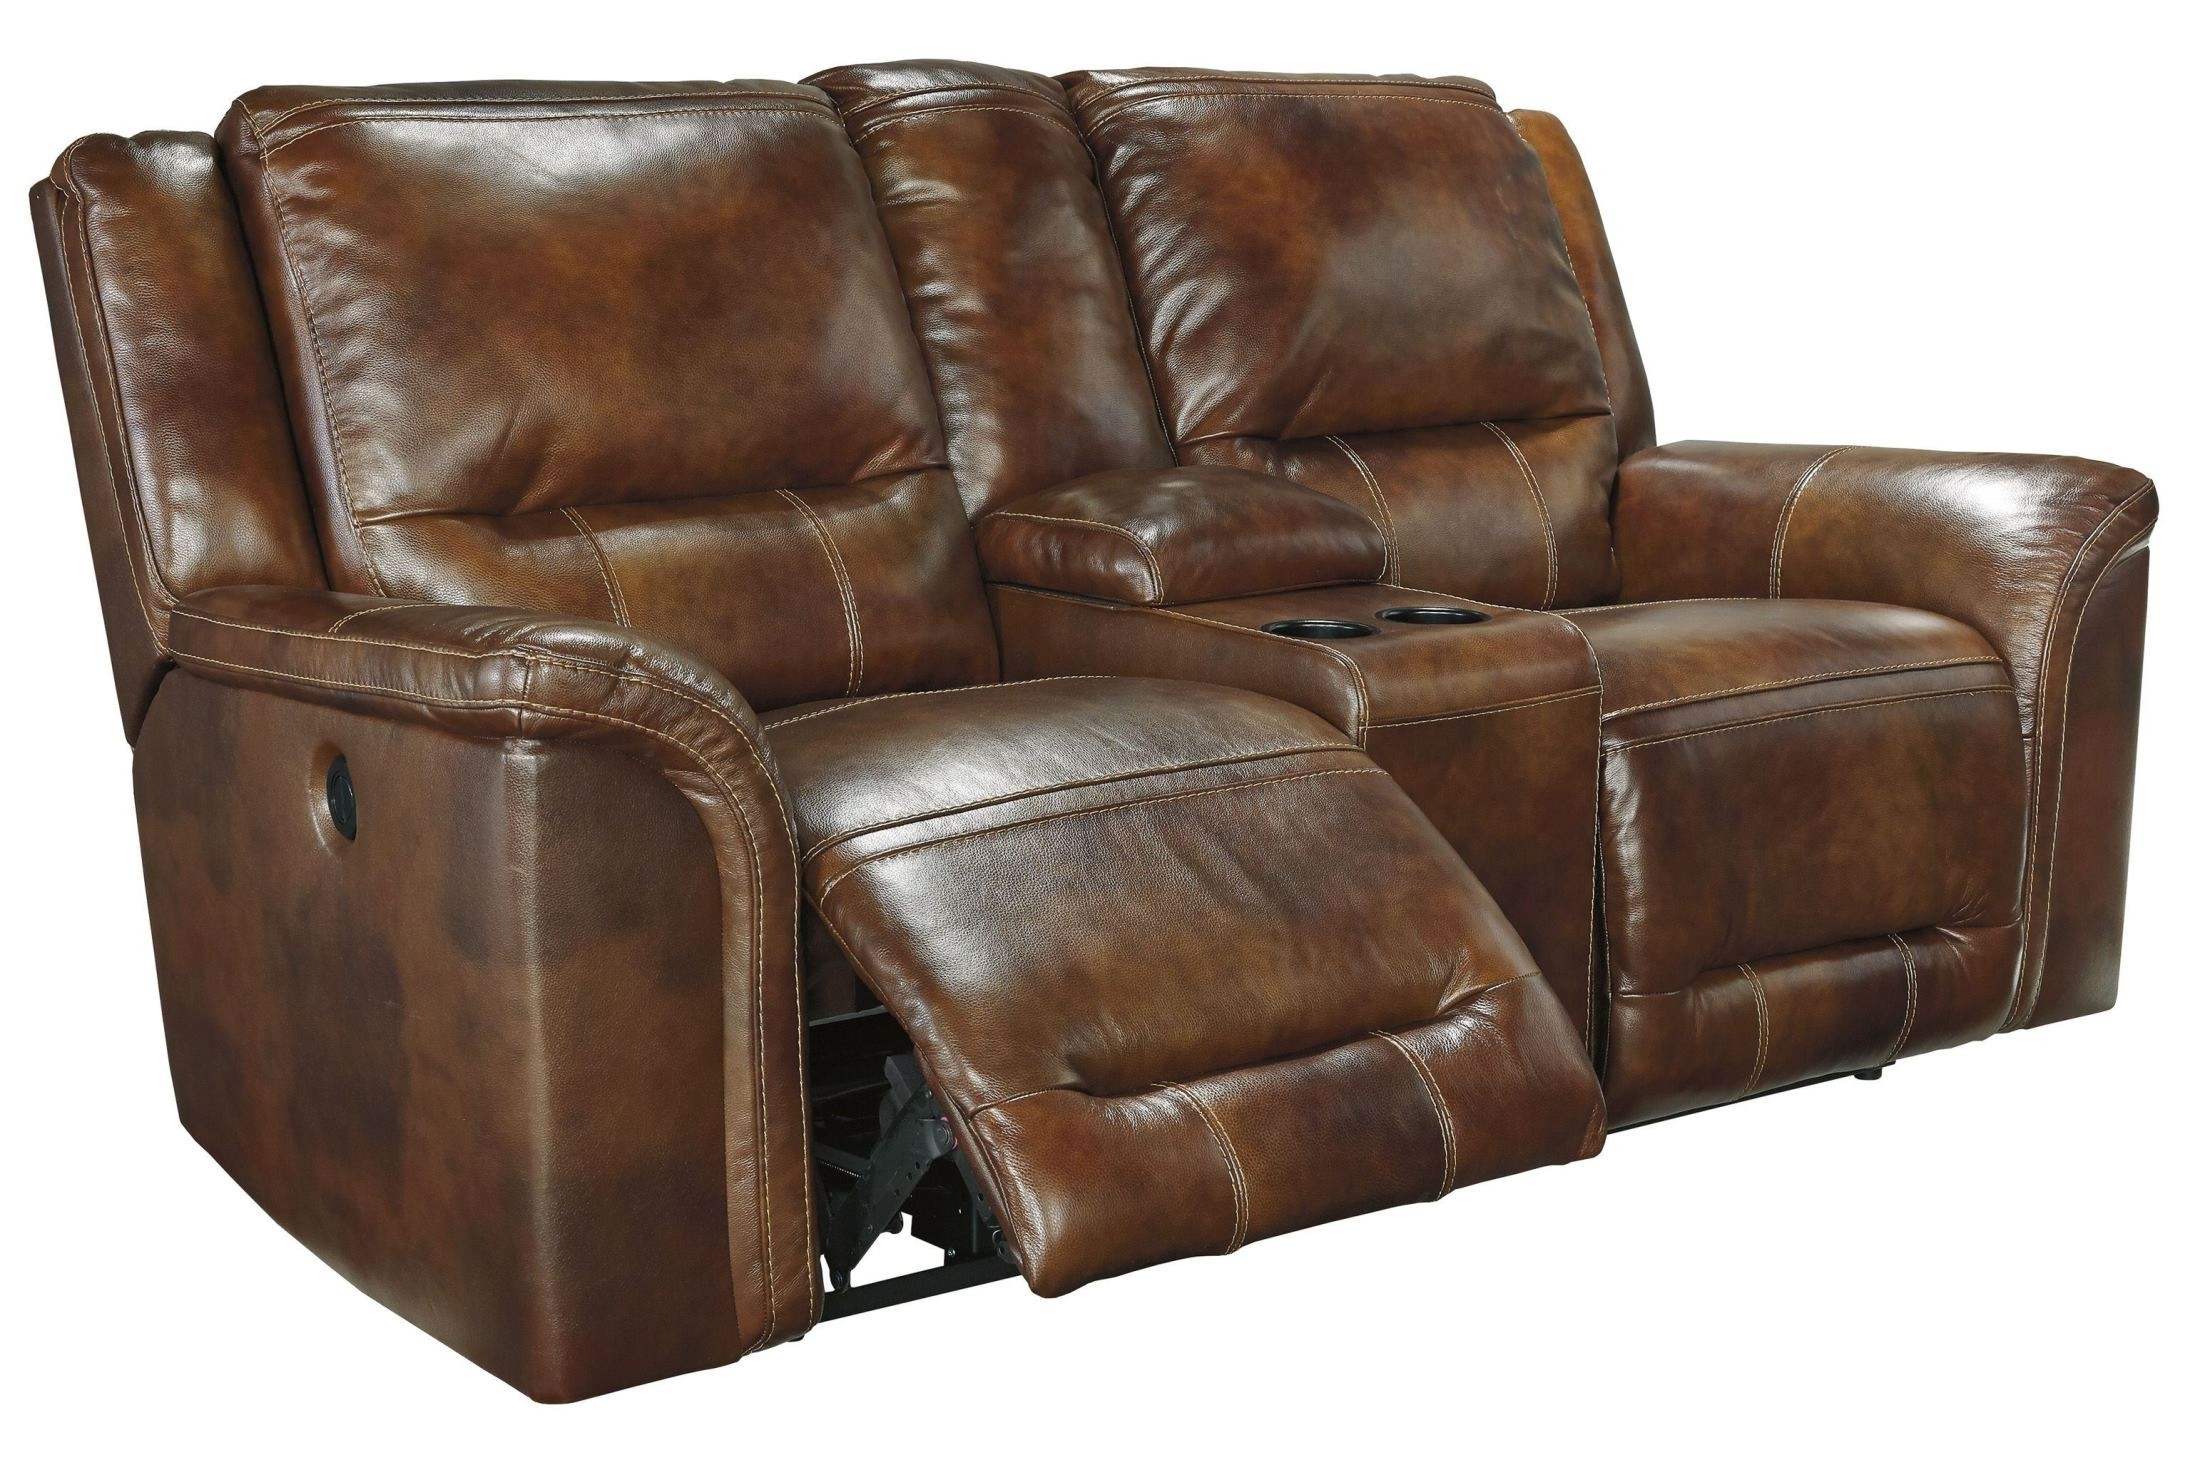 Jayron Harness Double Reclining Loveseat With Console From